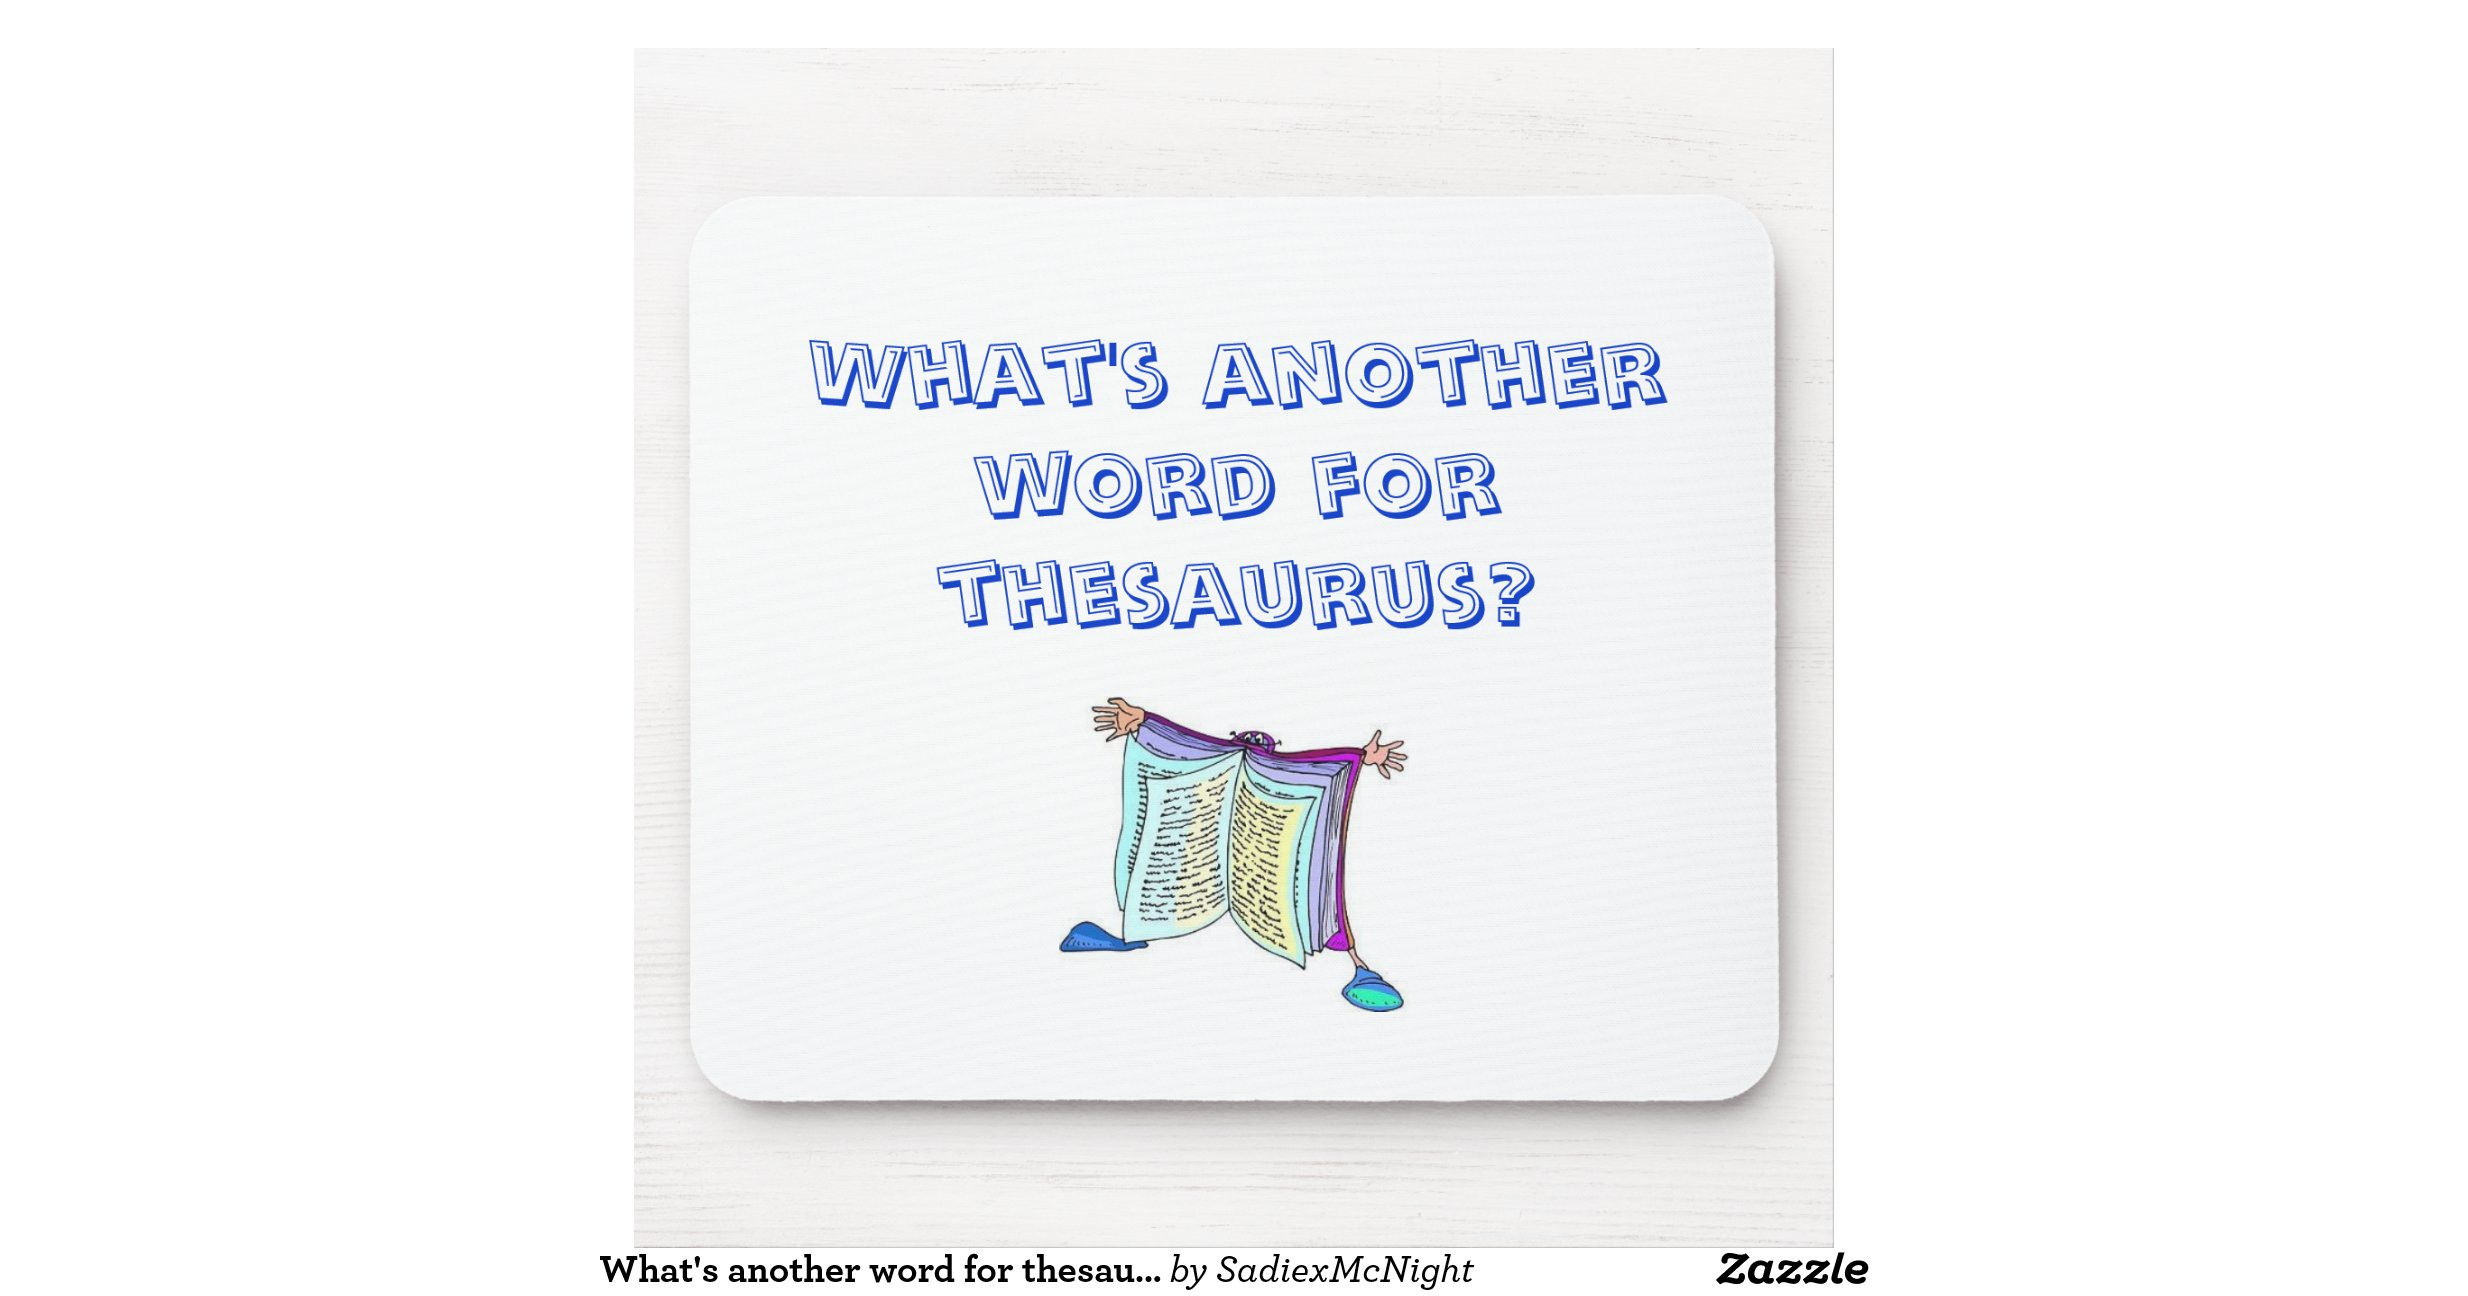 whats_another_word_for_thesaurus_mouse_pad ...